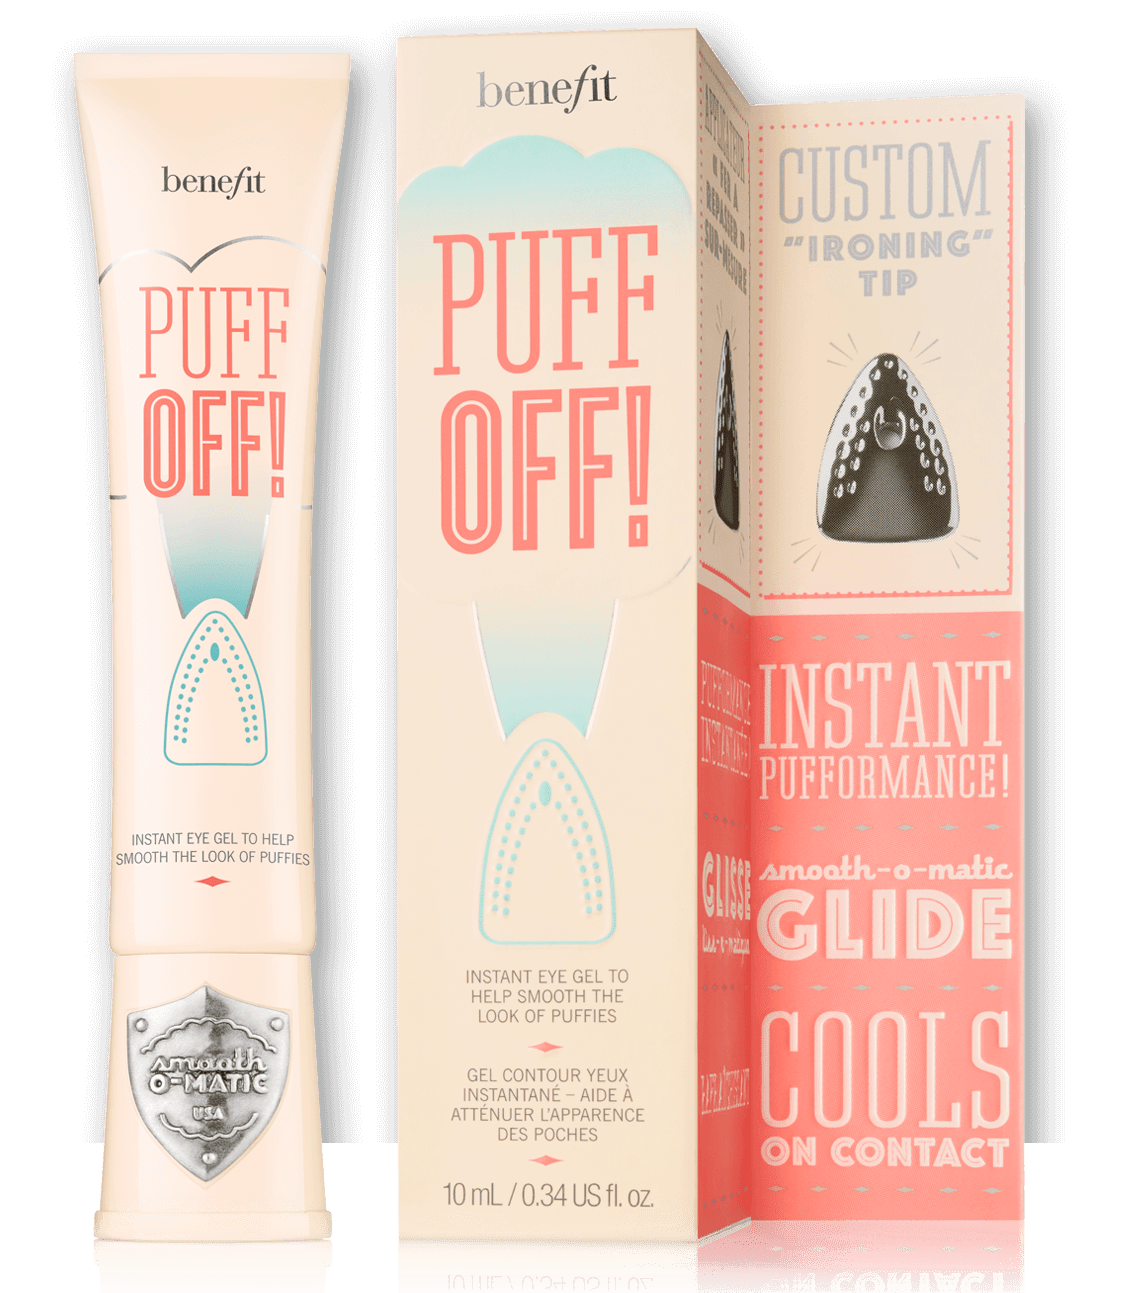 Benefit Cosmetics Puff Off! Under Eye Gel